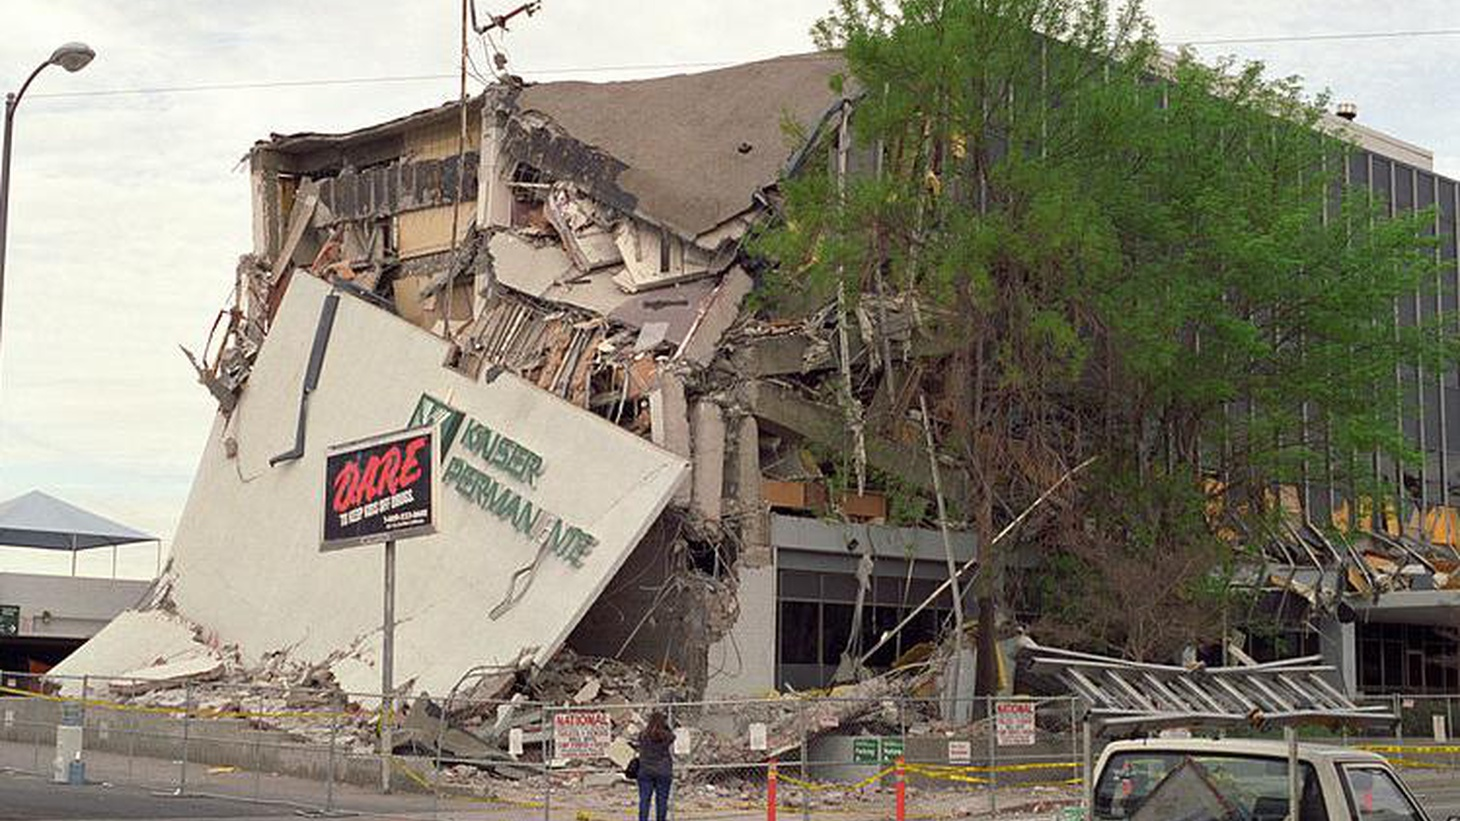 It's been 20 years since LA was shaken awake by a 6.7 magnitude tremor, leaving unforgettable memories. Scientists are certain there will be more shaking.